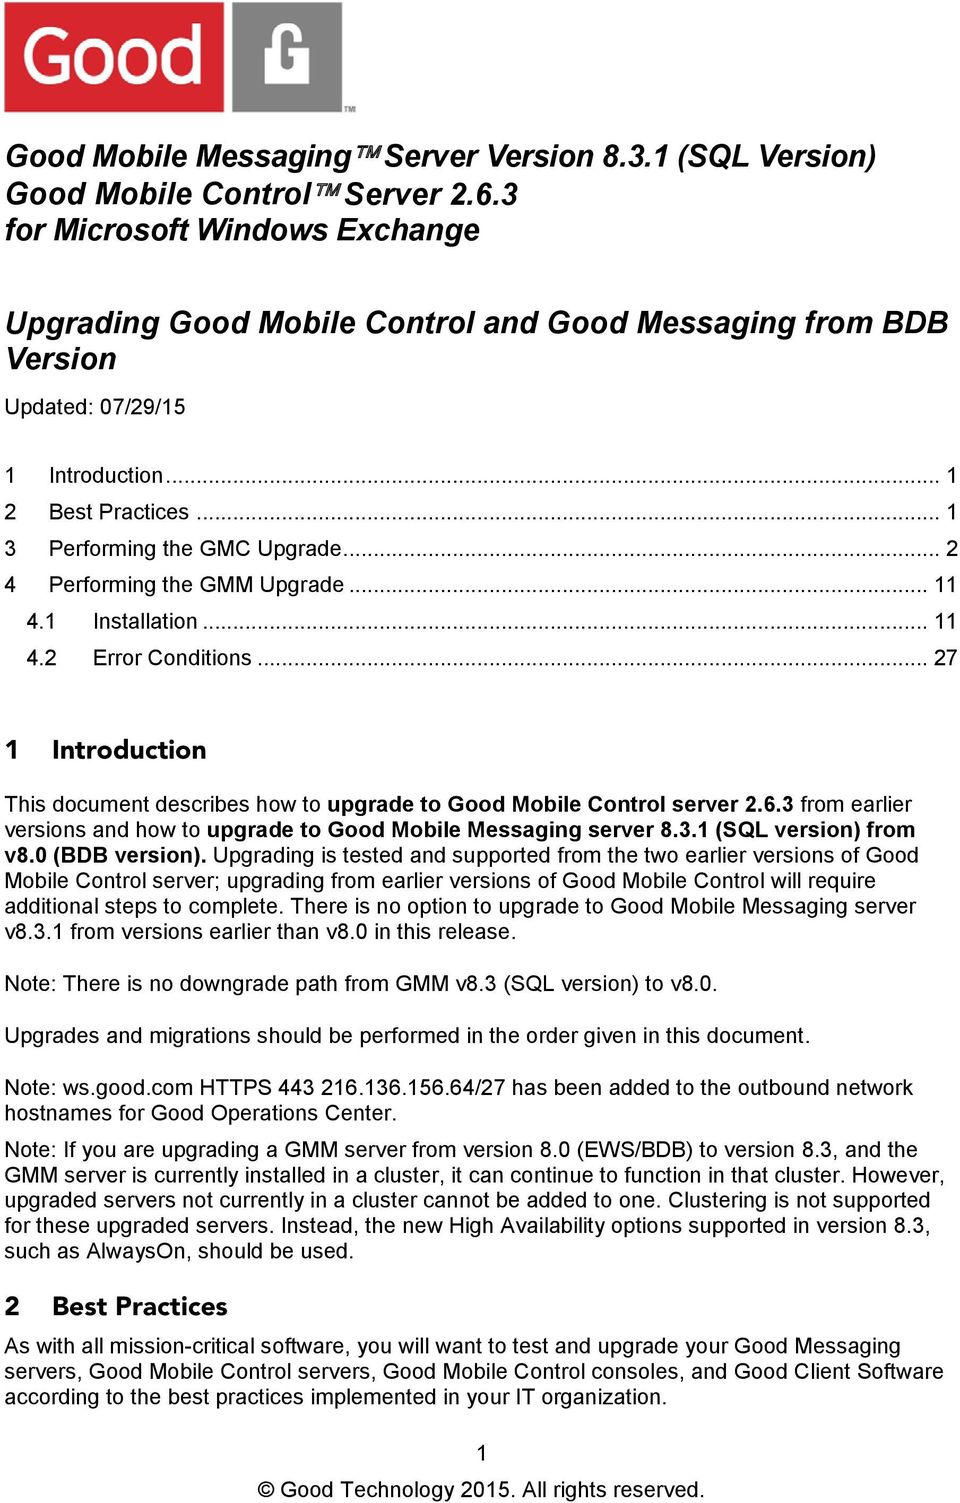 .. 2 4 Performing the GMM Upgrade... 11 4.1 Installation... 11 4.2 Error Conditions... 27 1 Introduction This document describes how to upgrade to Good Mobile Control server 2.6.